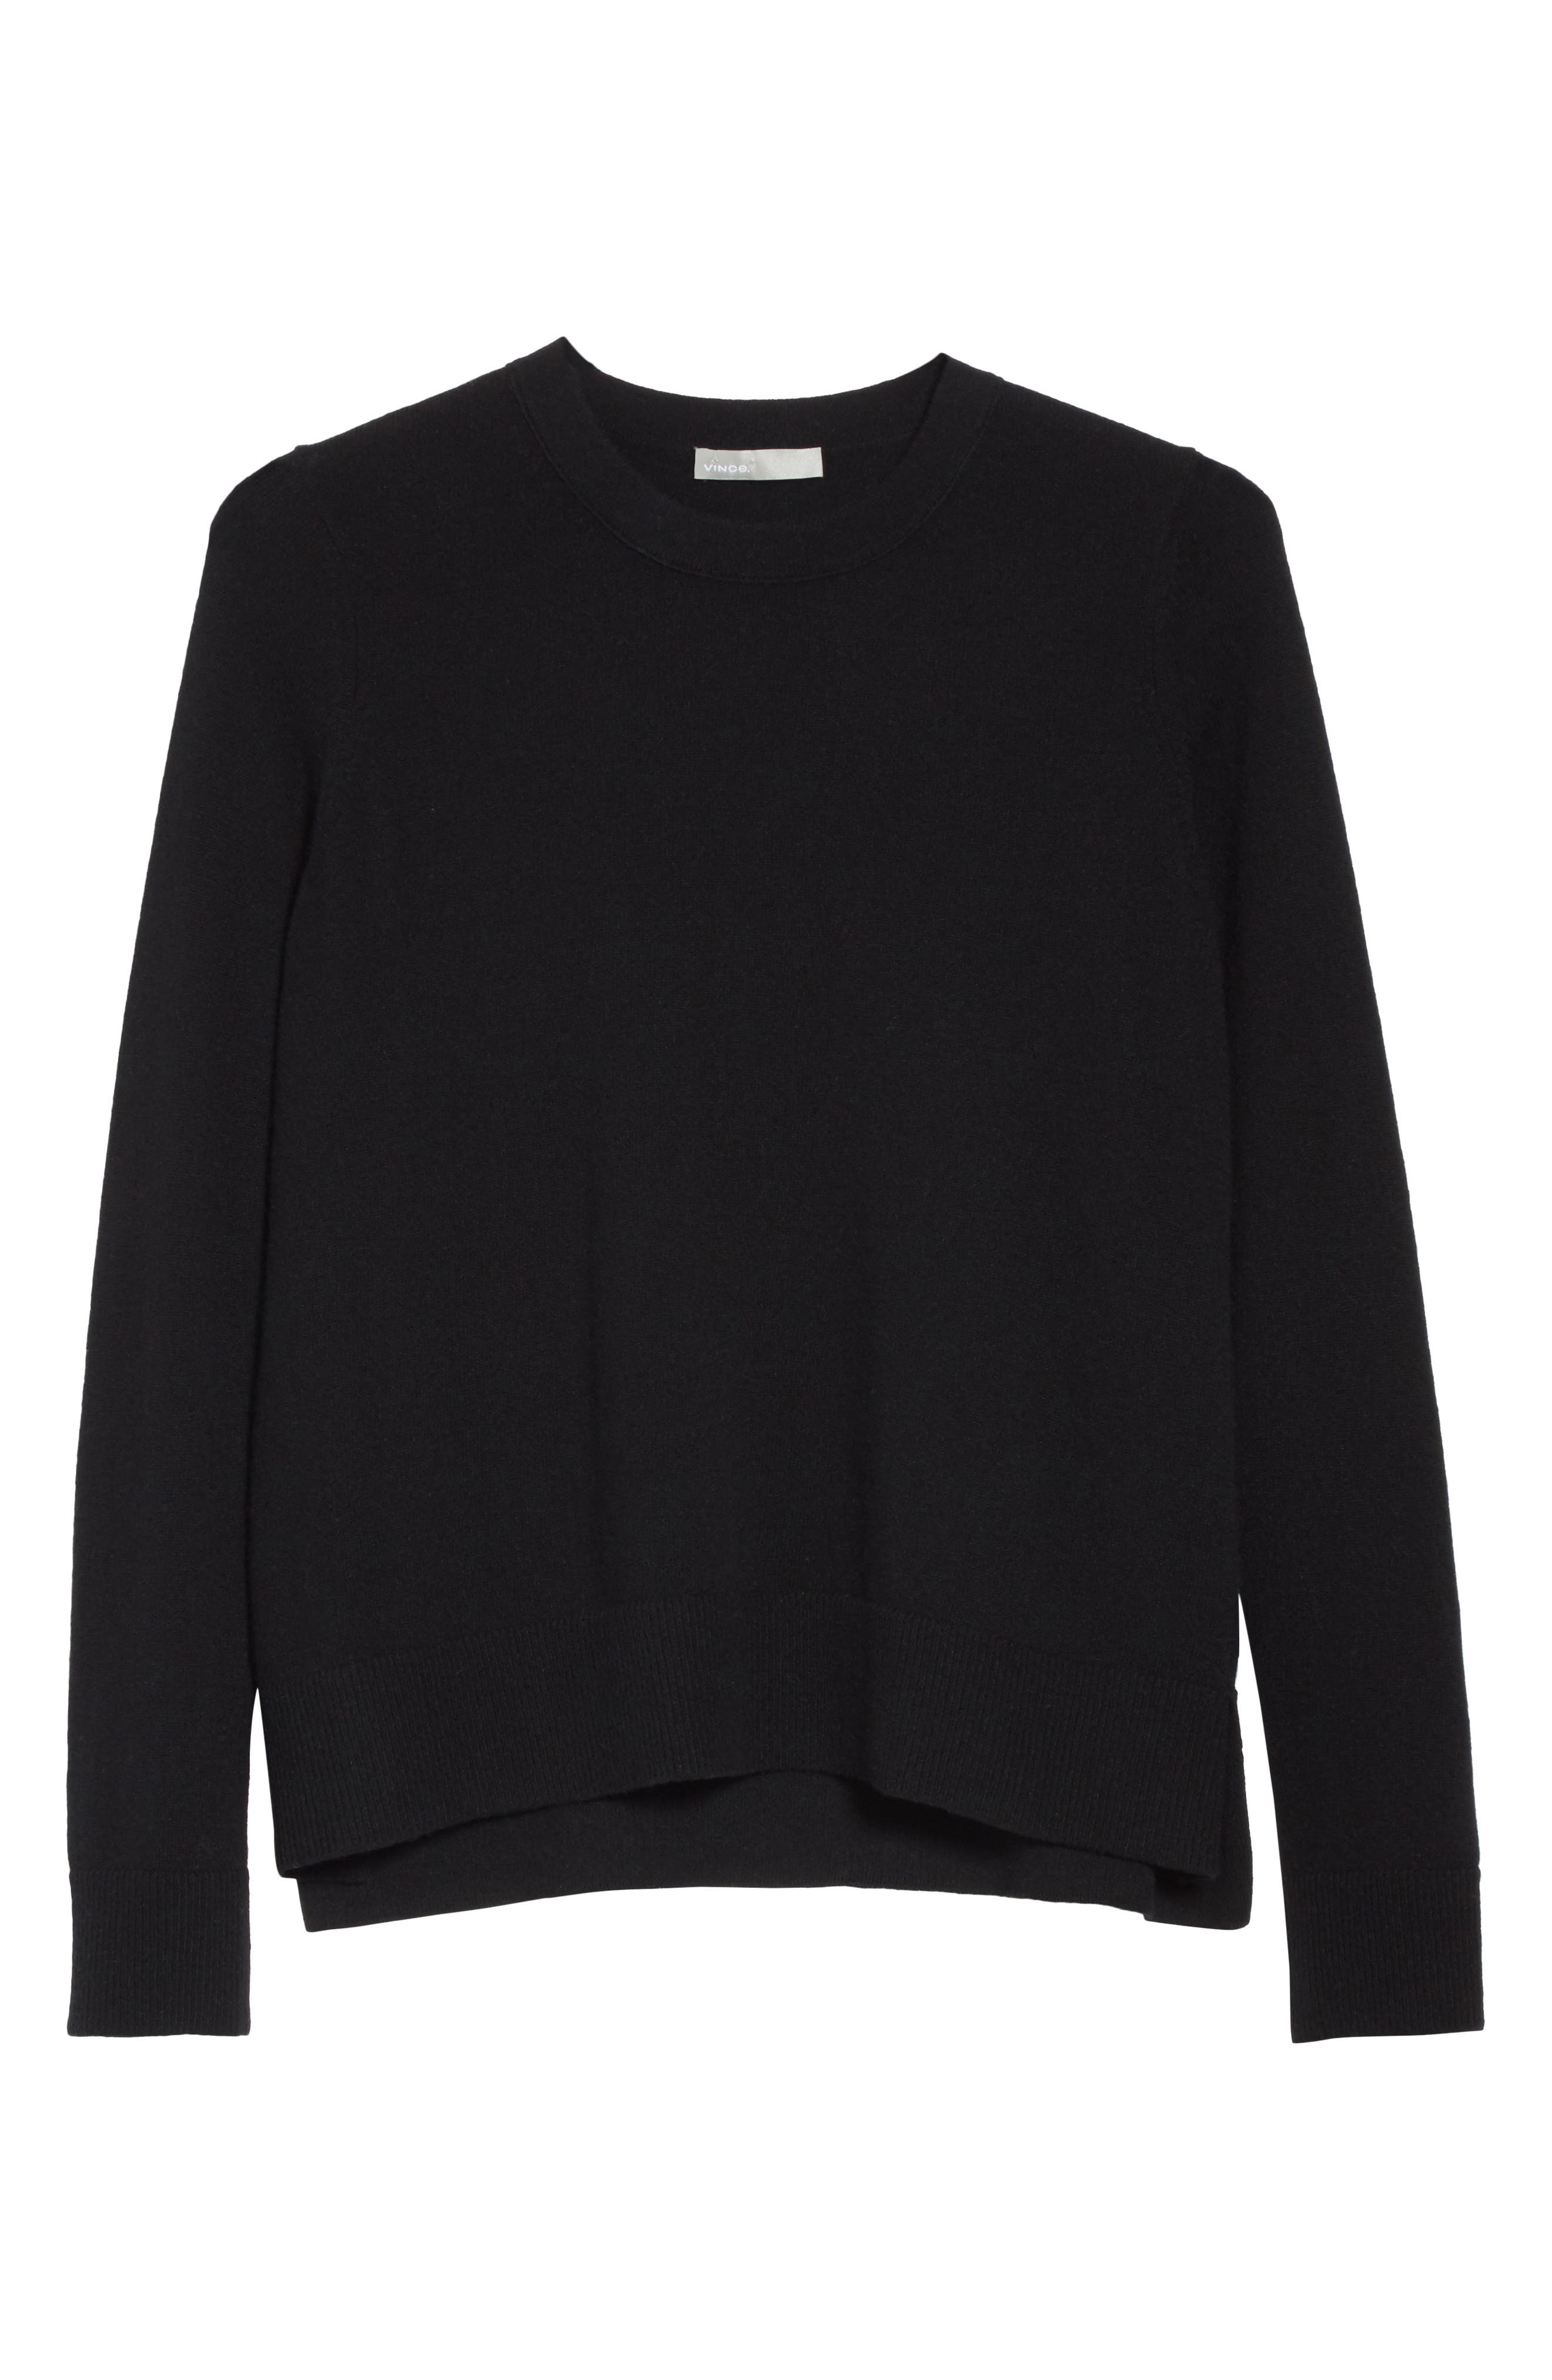 Cashmere Sweater,                             Alternate thumbnail 6, color,                             001